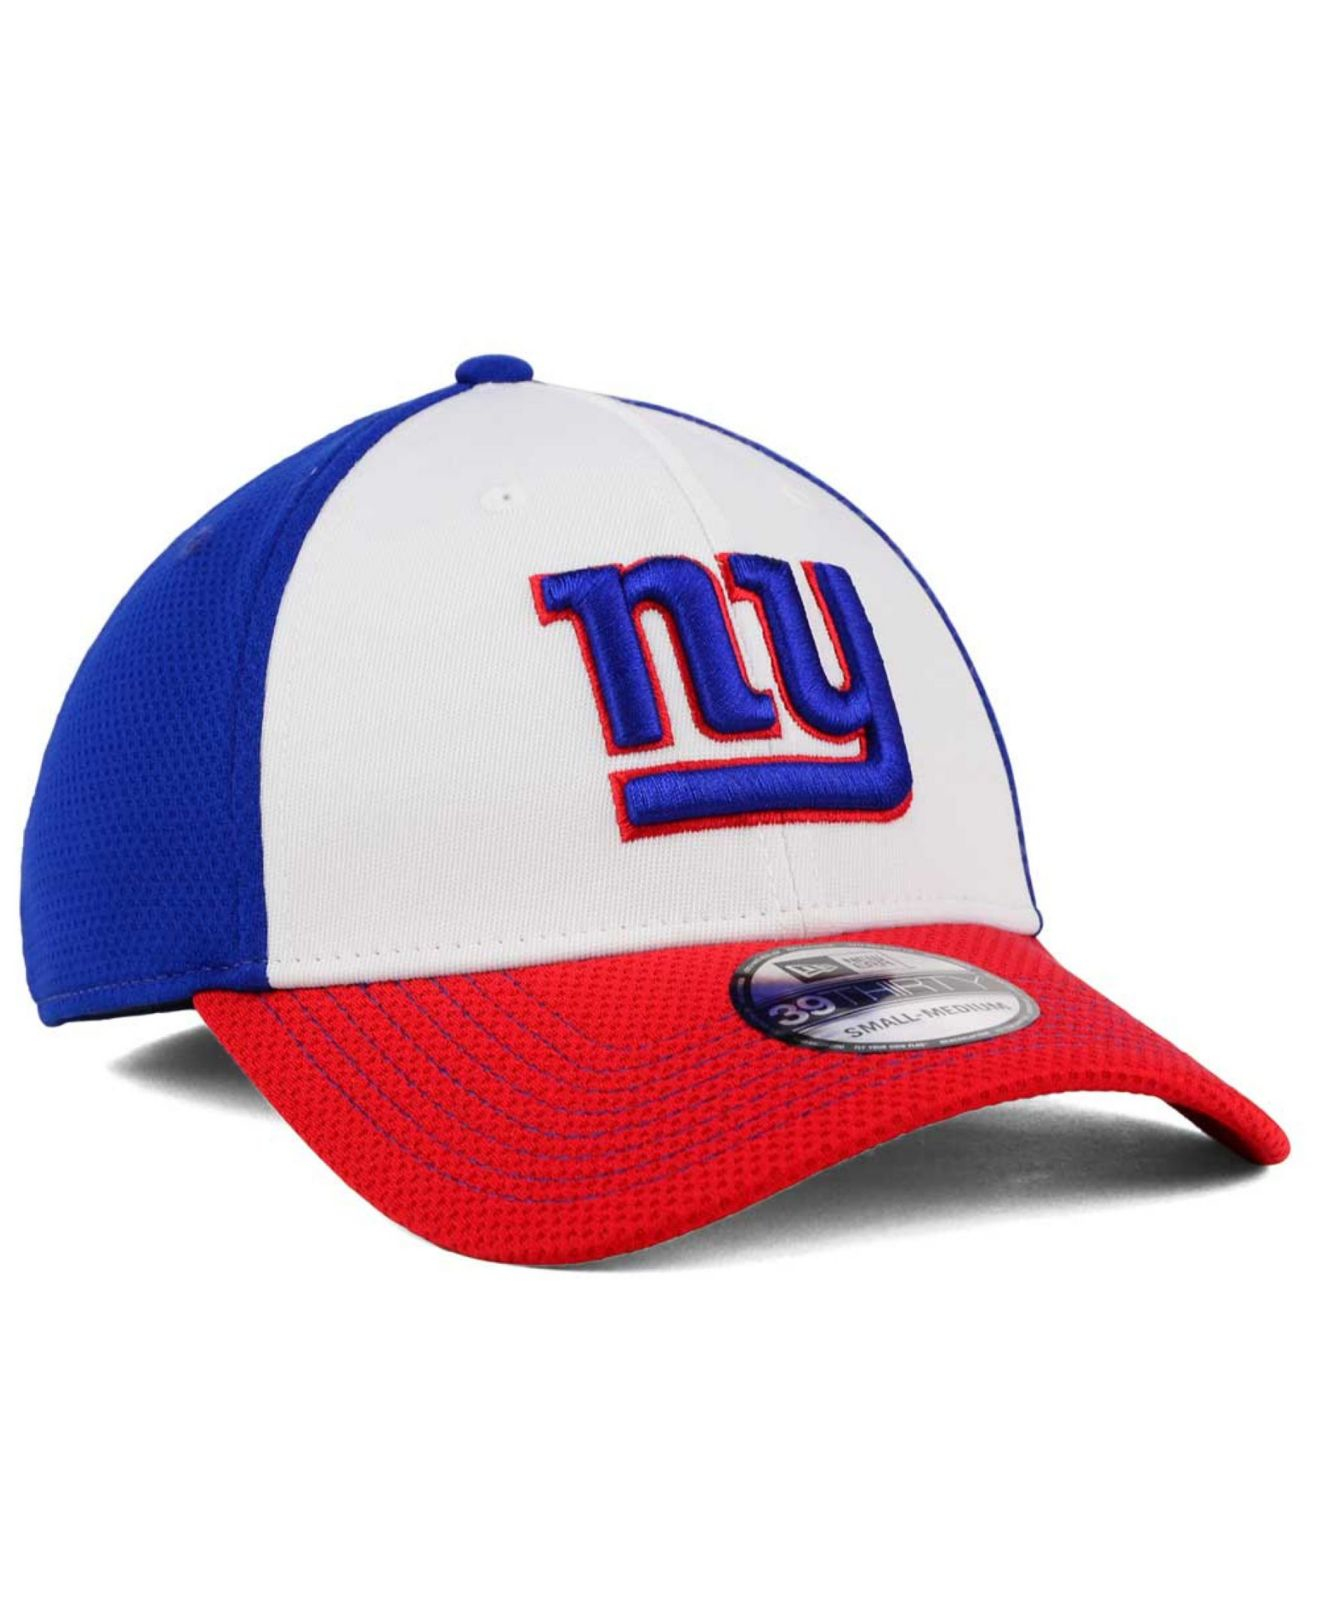 168b139f42b new-era-royalblue-new-york-giants-chase-white-front-mesh-39thirty-cap -product-0-505586206-normal.jpeg